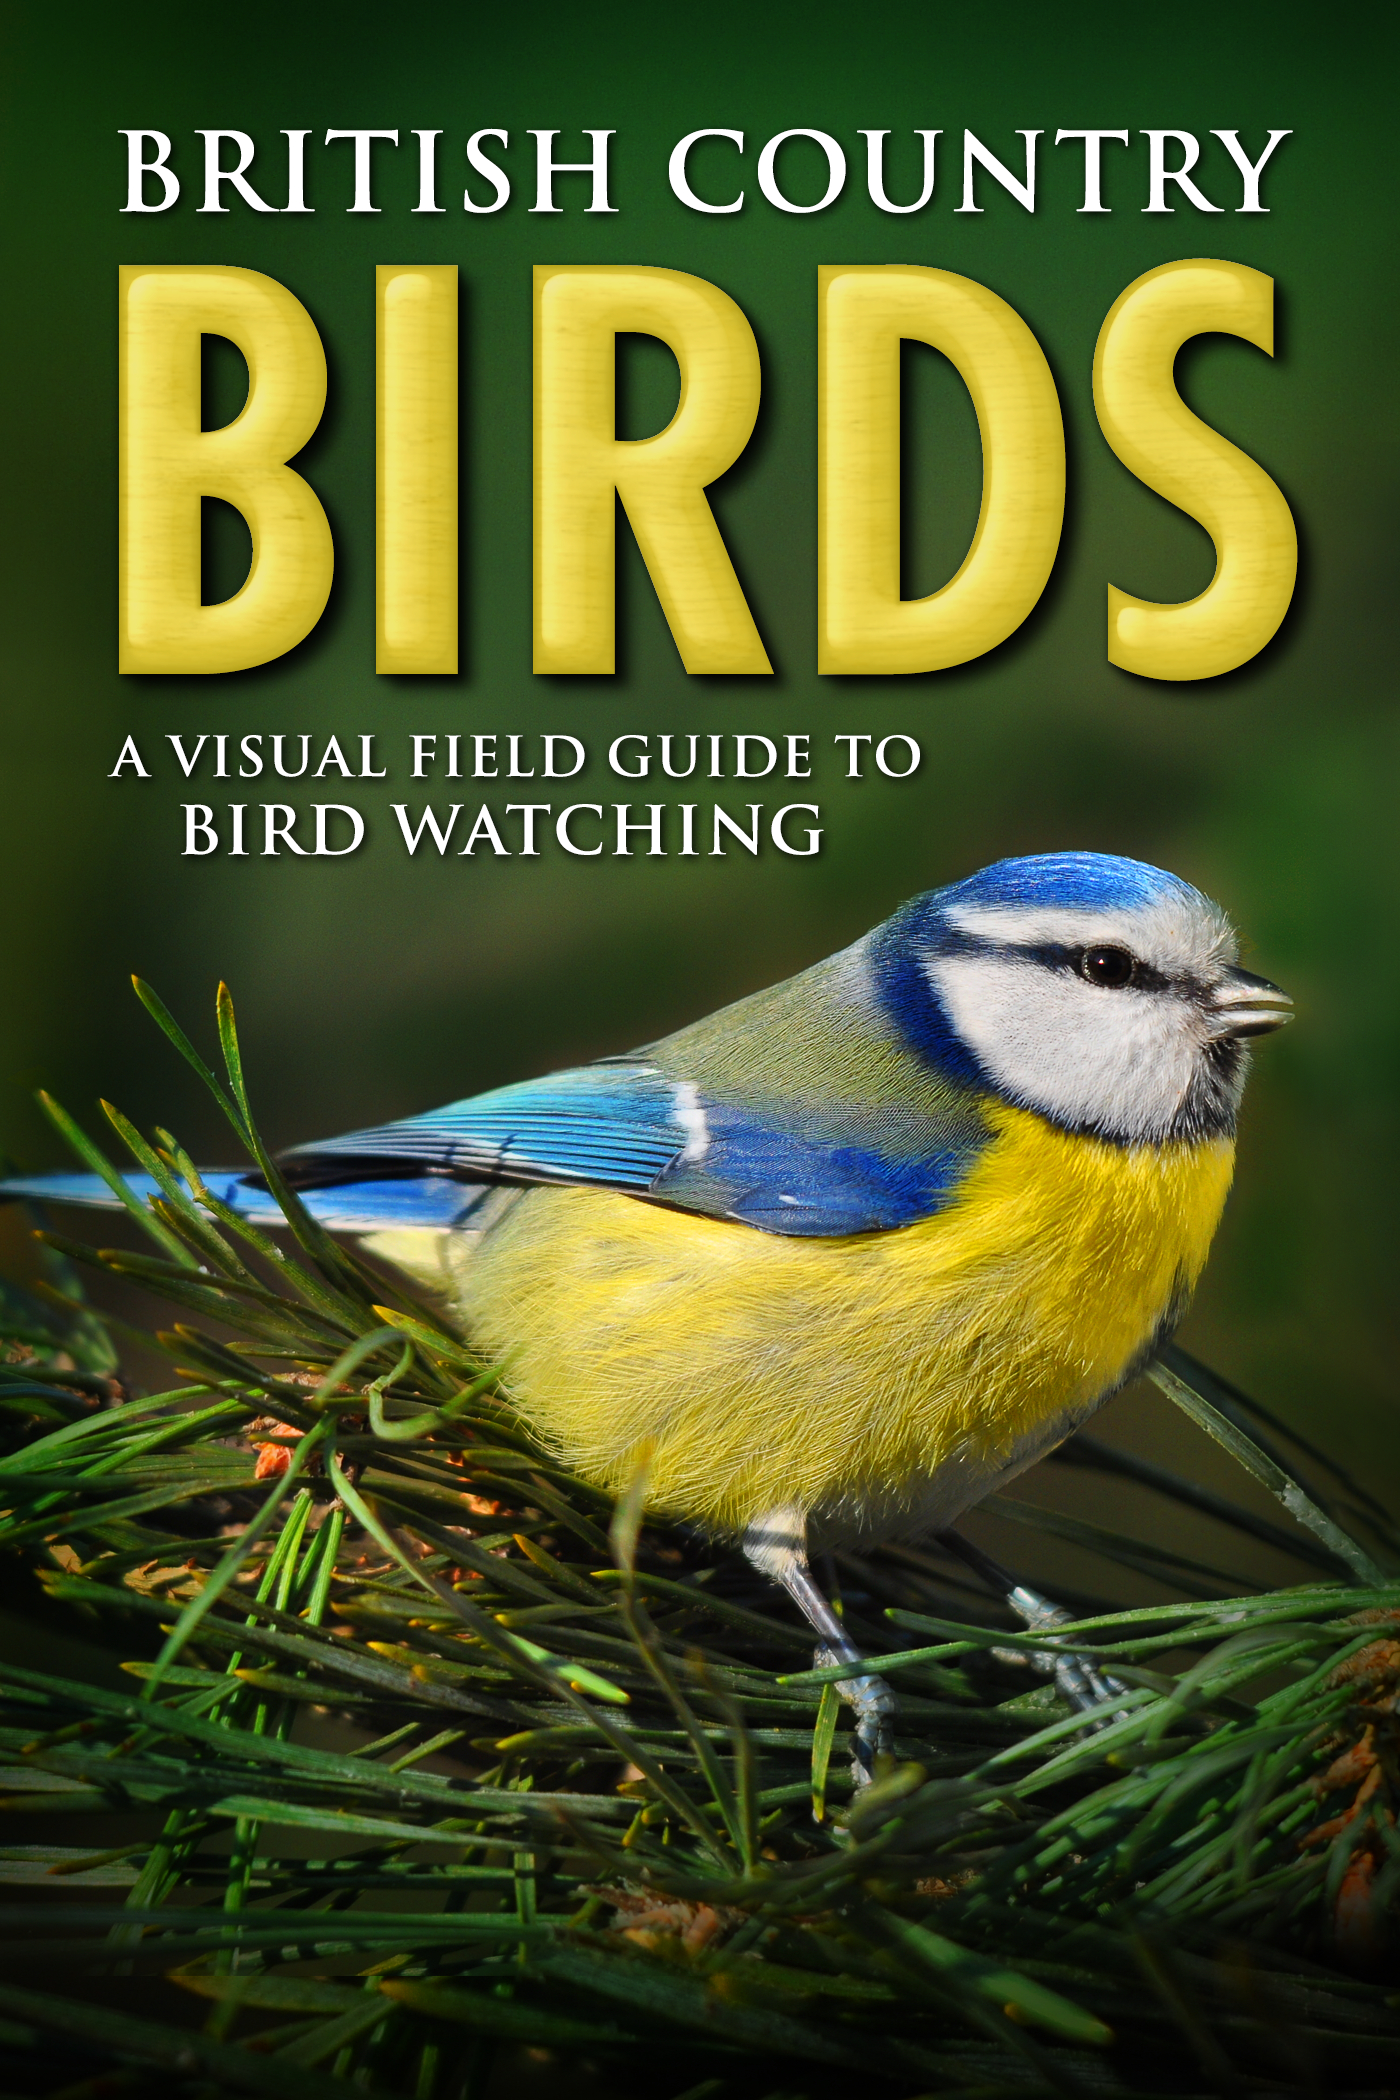 A guide to bird watching | Open Library